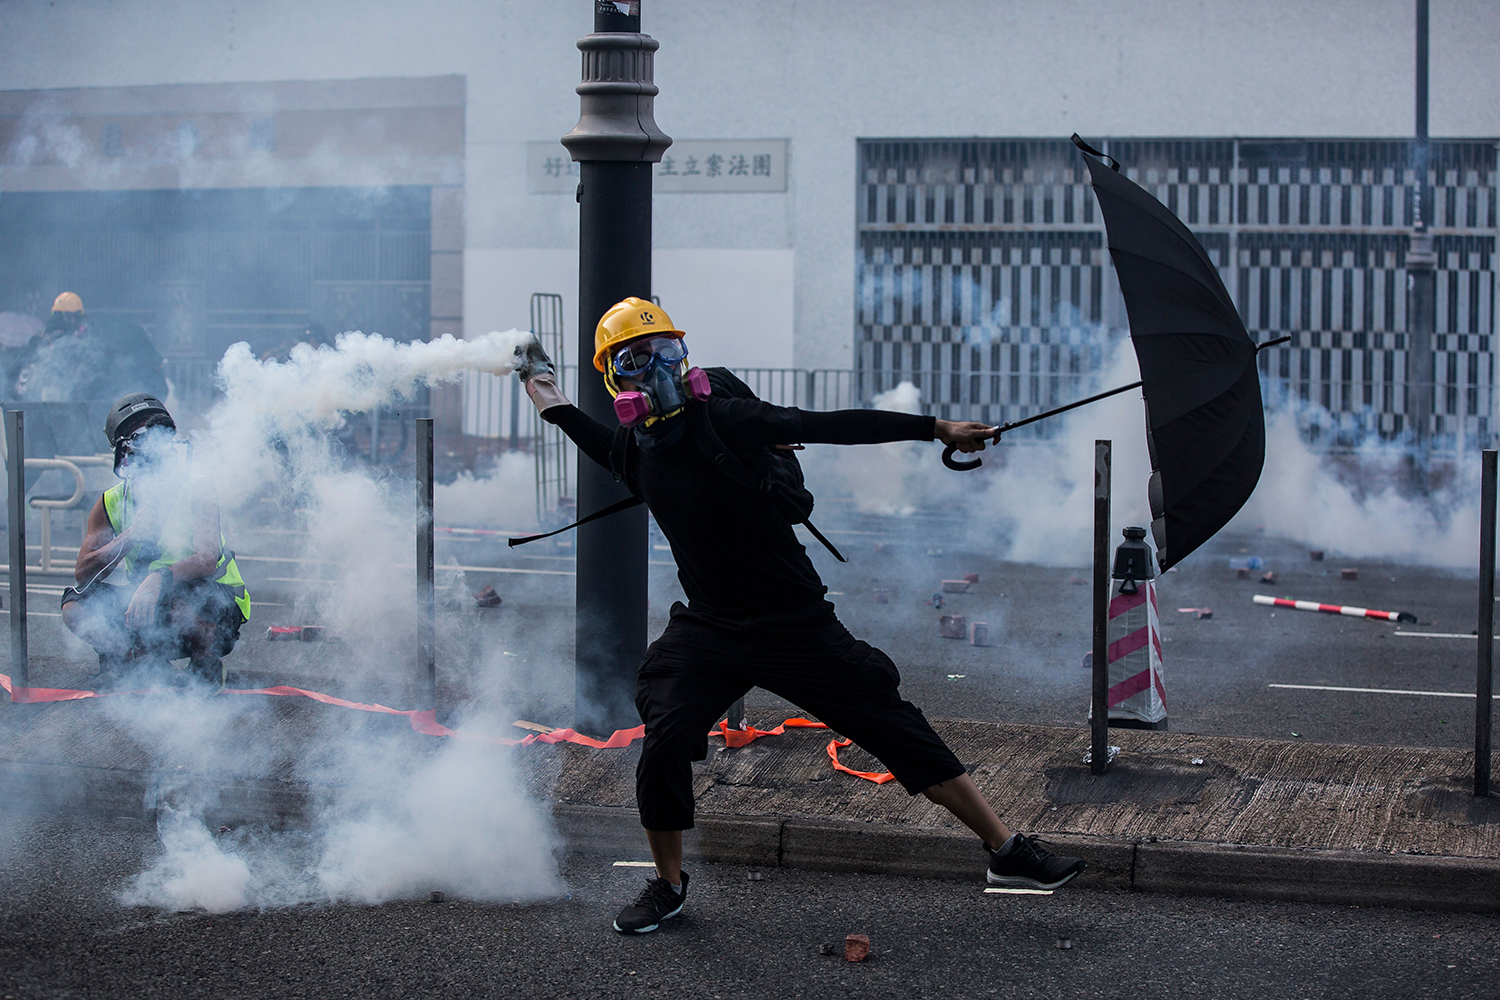 A protester throws a tear gas canister fired by police in the Sha Tin district of Hong Kong on Oct. 1. ISAAC LAWRENCE/AFP/Getty Images